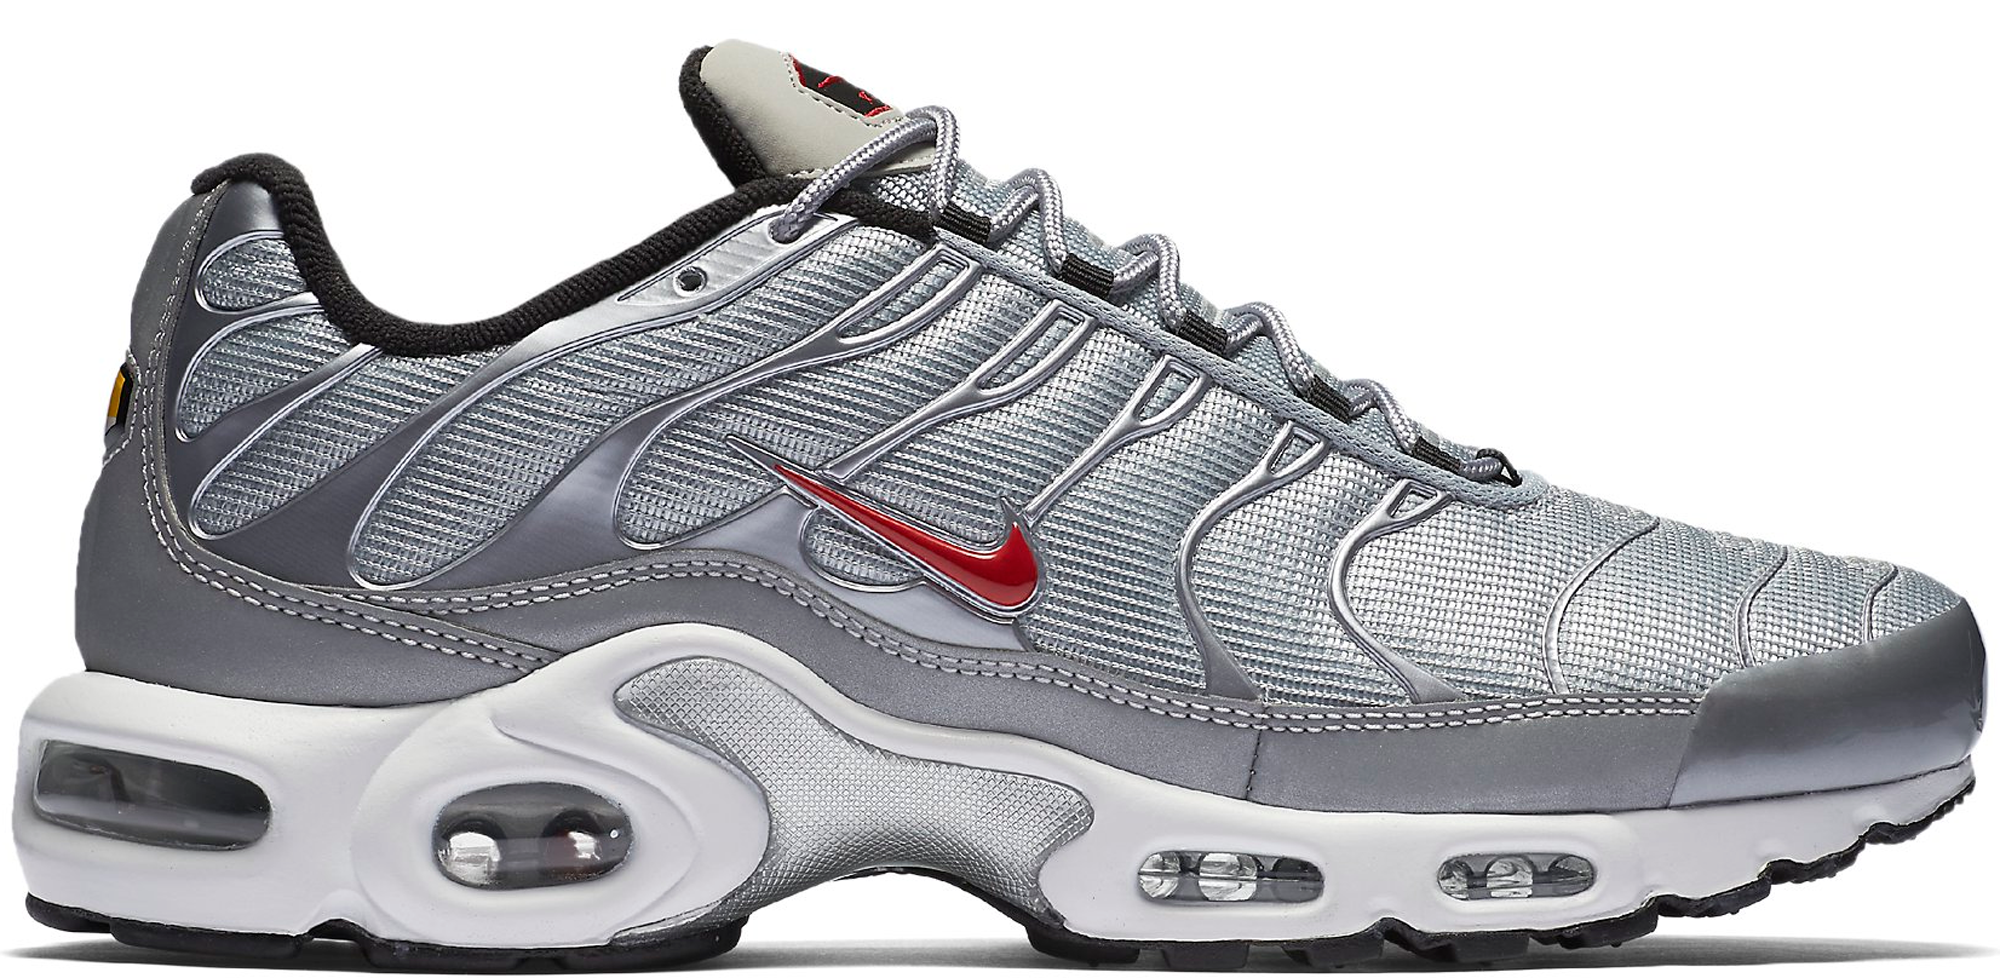 nike air max plus silver bullet. Black Bedroom Furniture Sets. Home Design Ideas